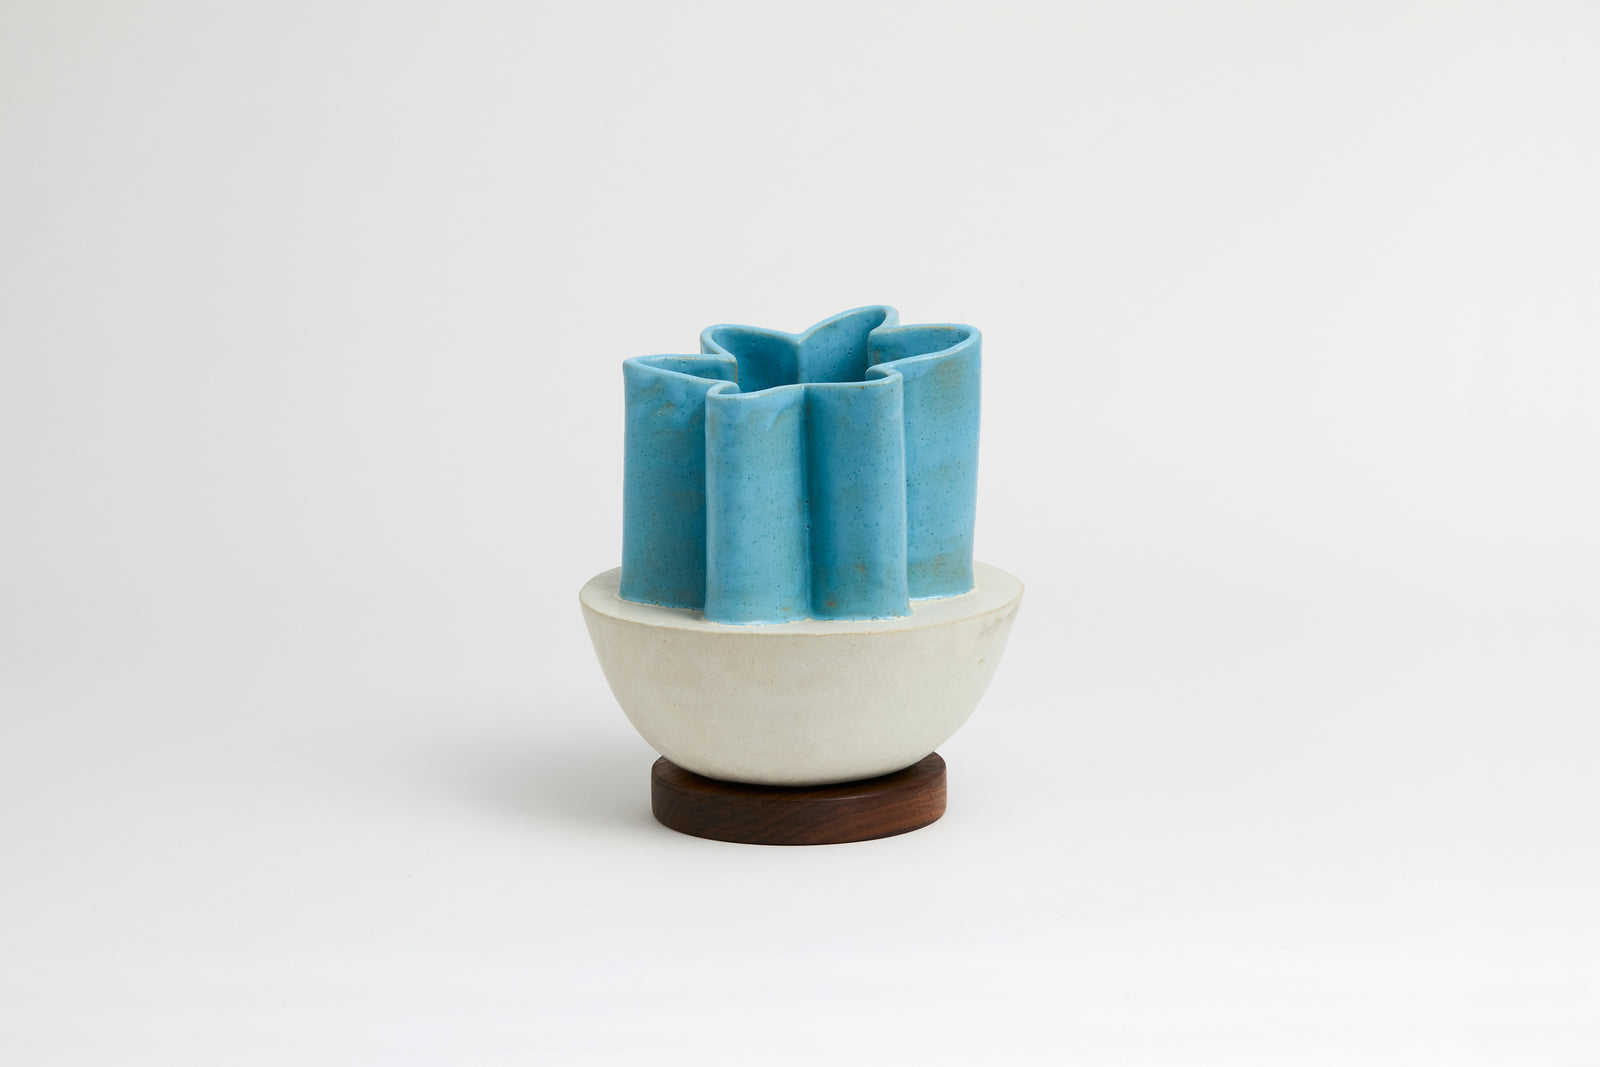 Half Scallop Vase Cream & Baby Blue